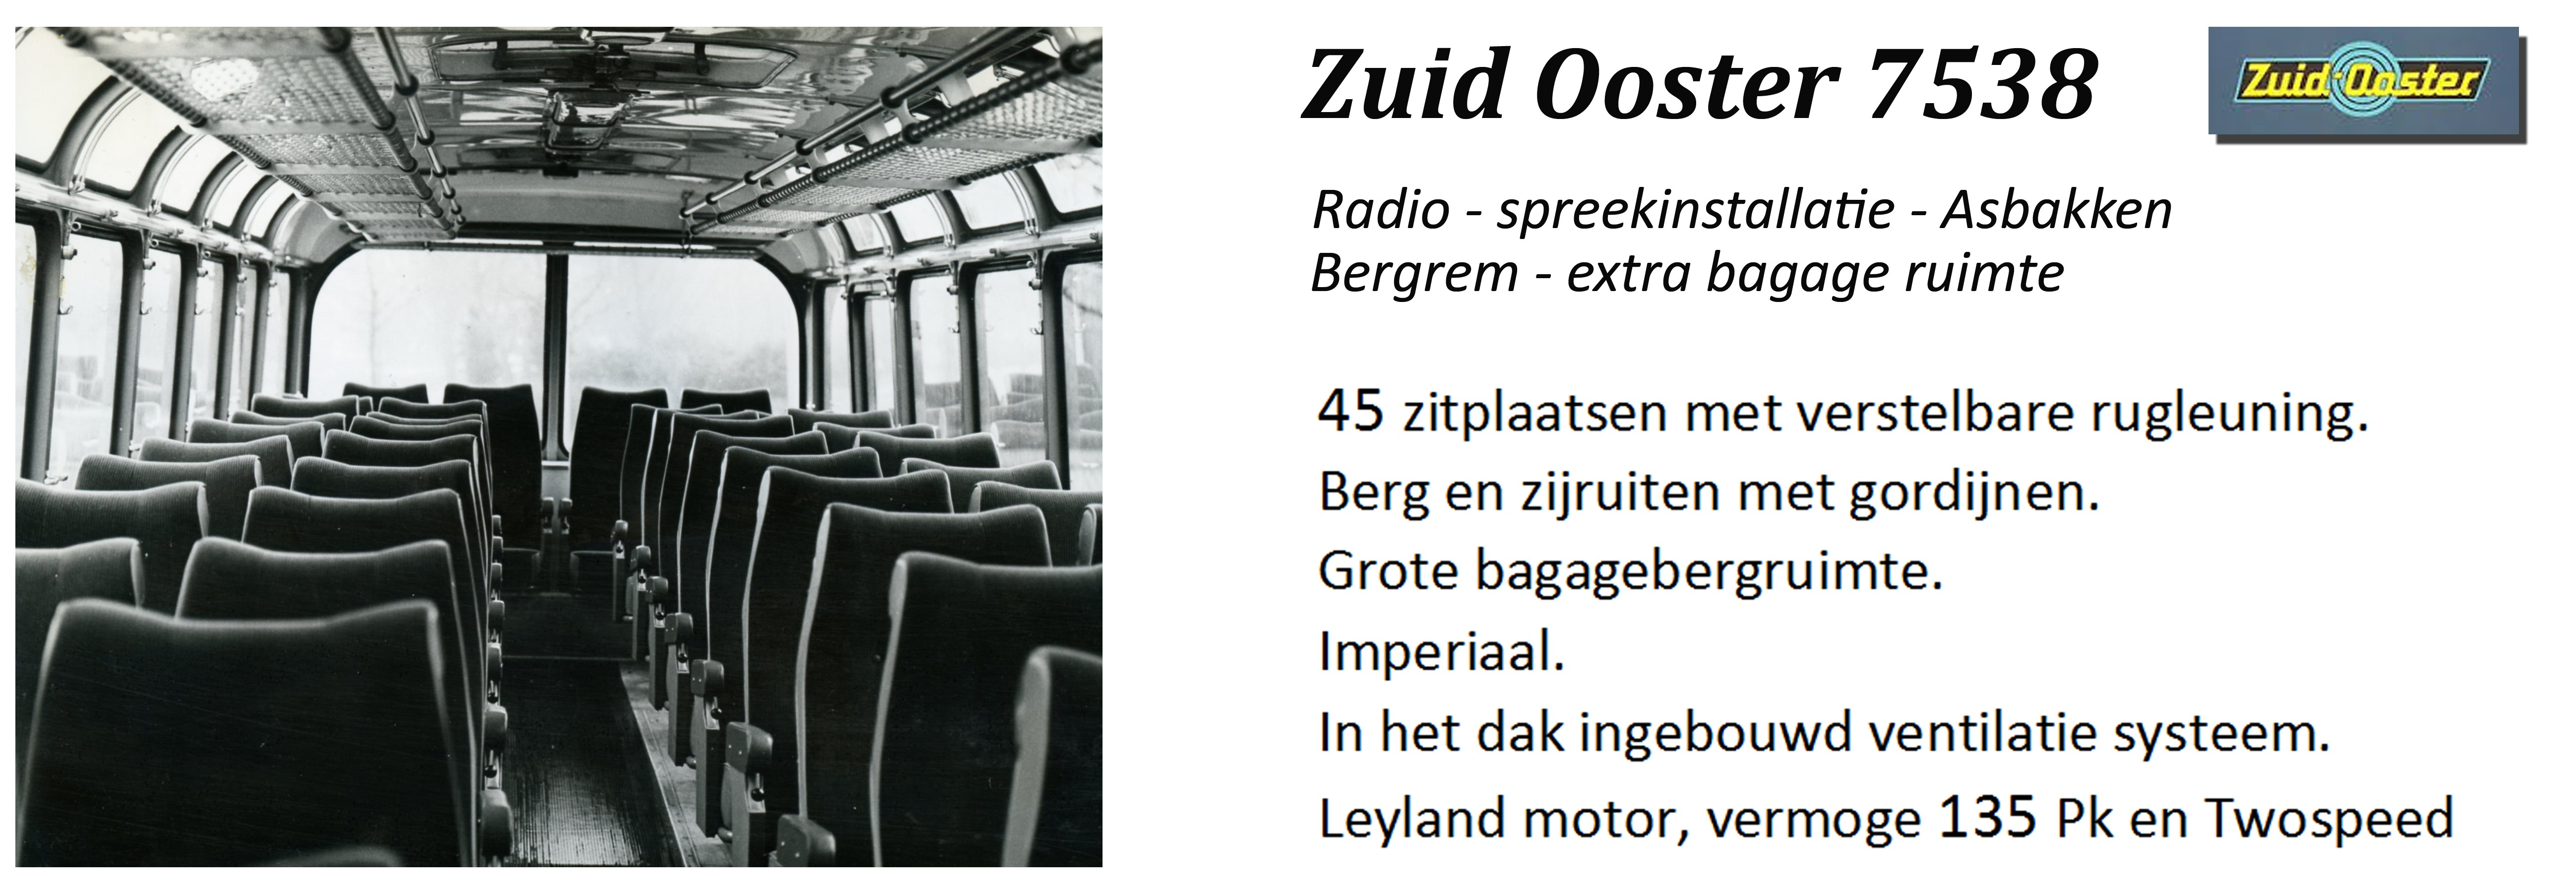 7538-Zuid-Ooster-1